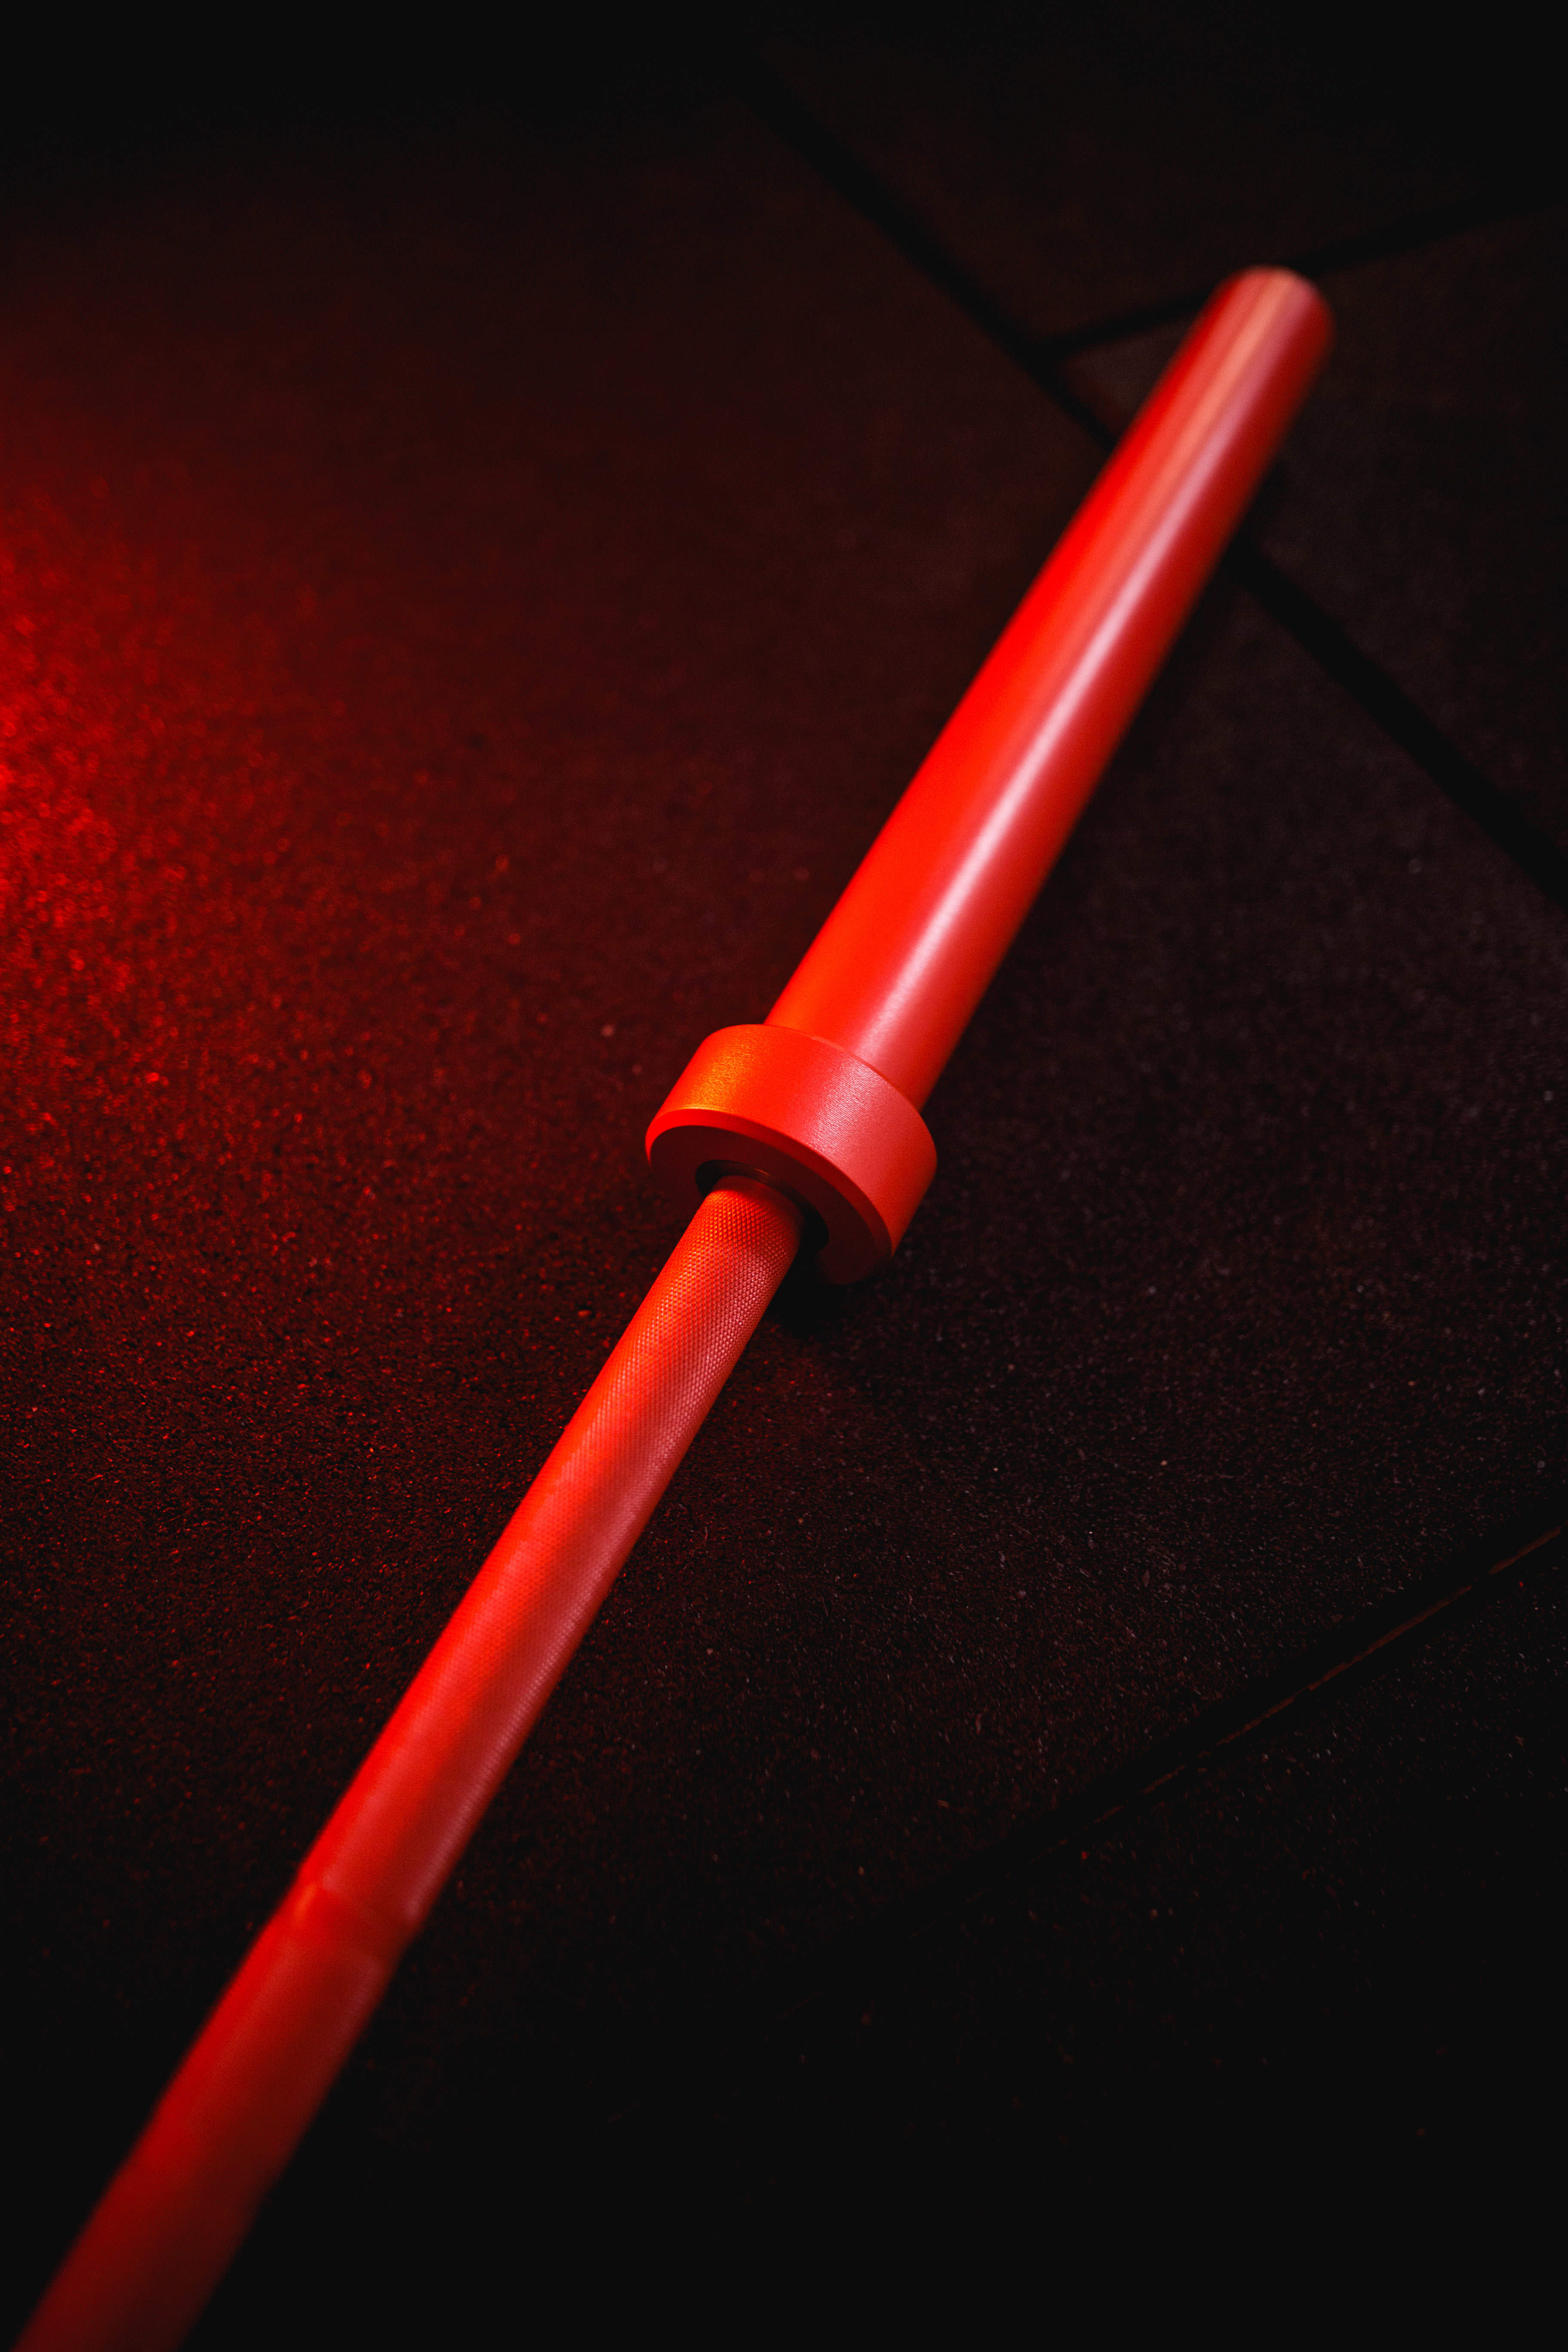 Energetic Red Barbell